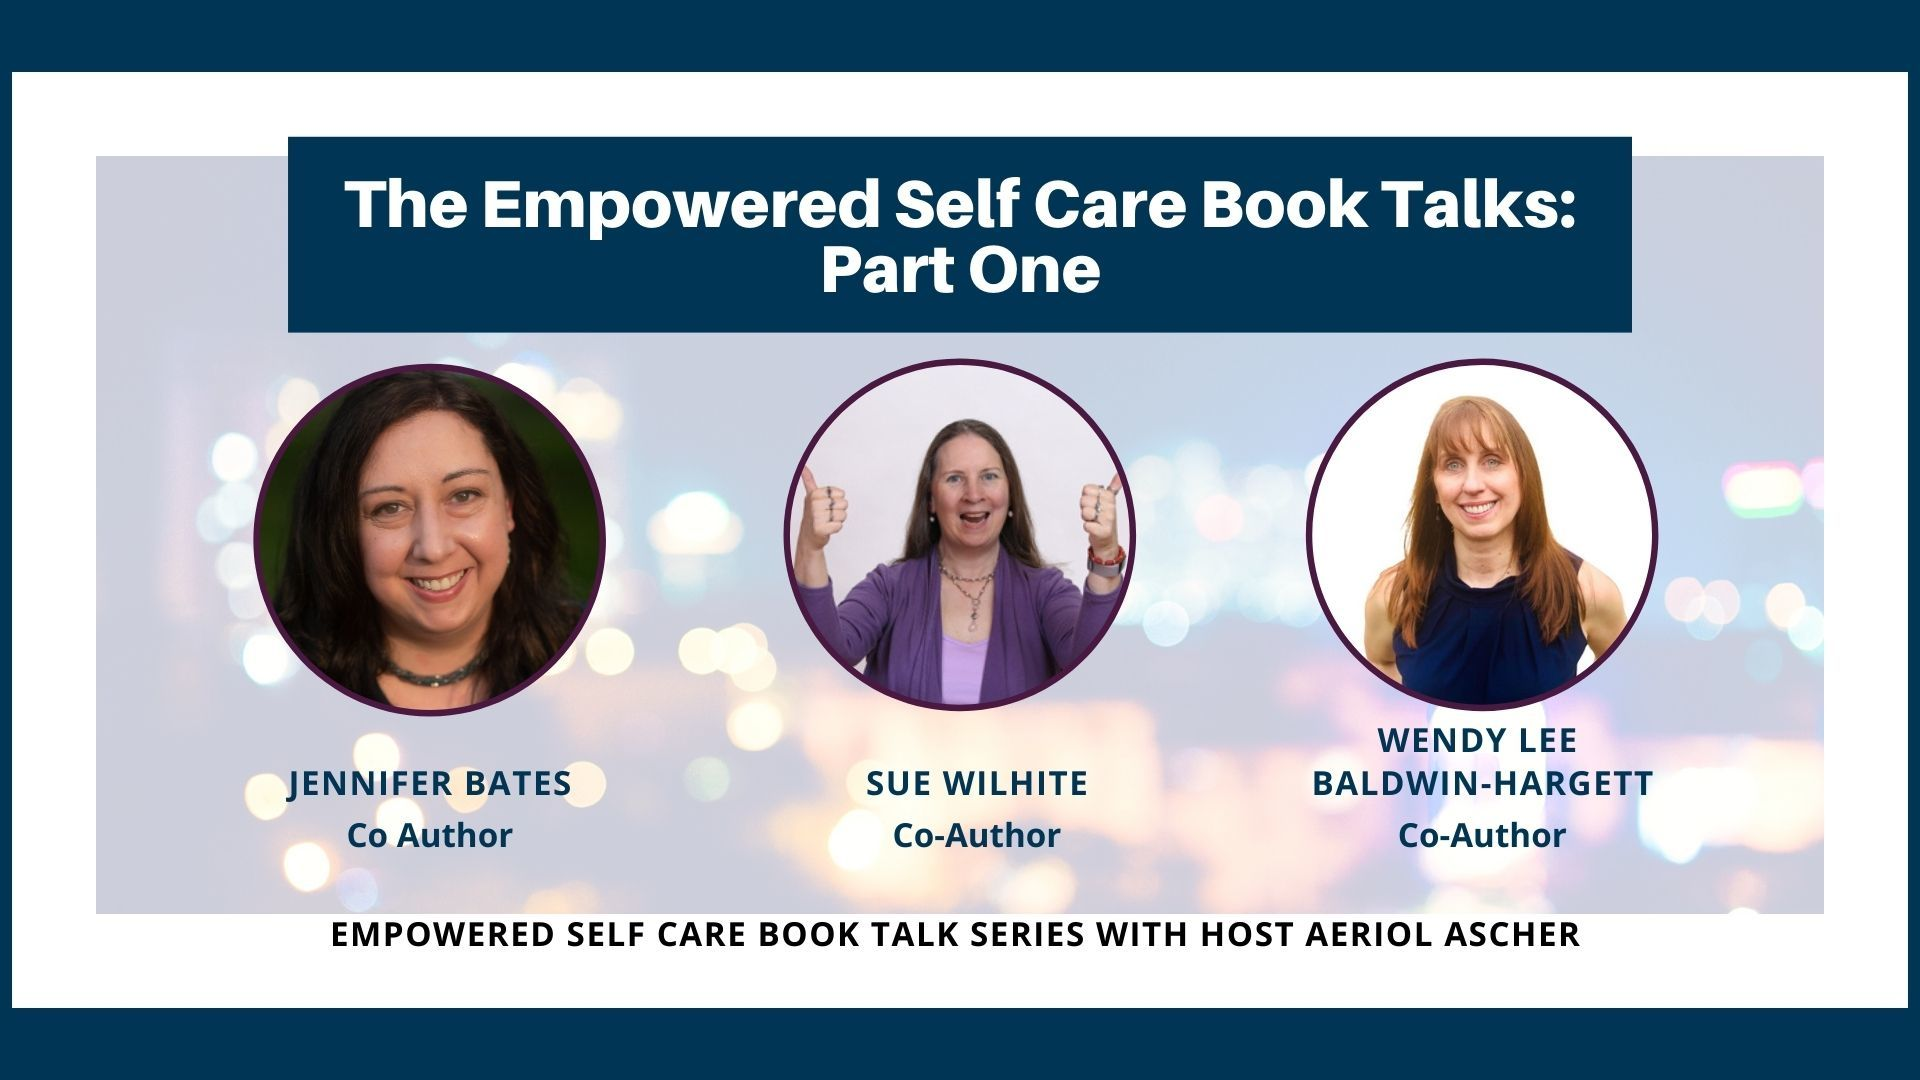 The Empowered Self Care Book Talk Series Part 1